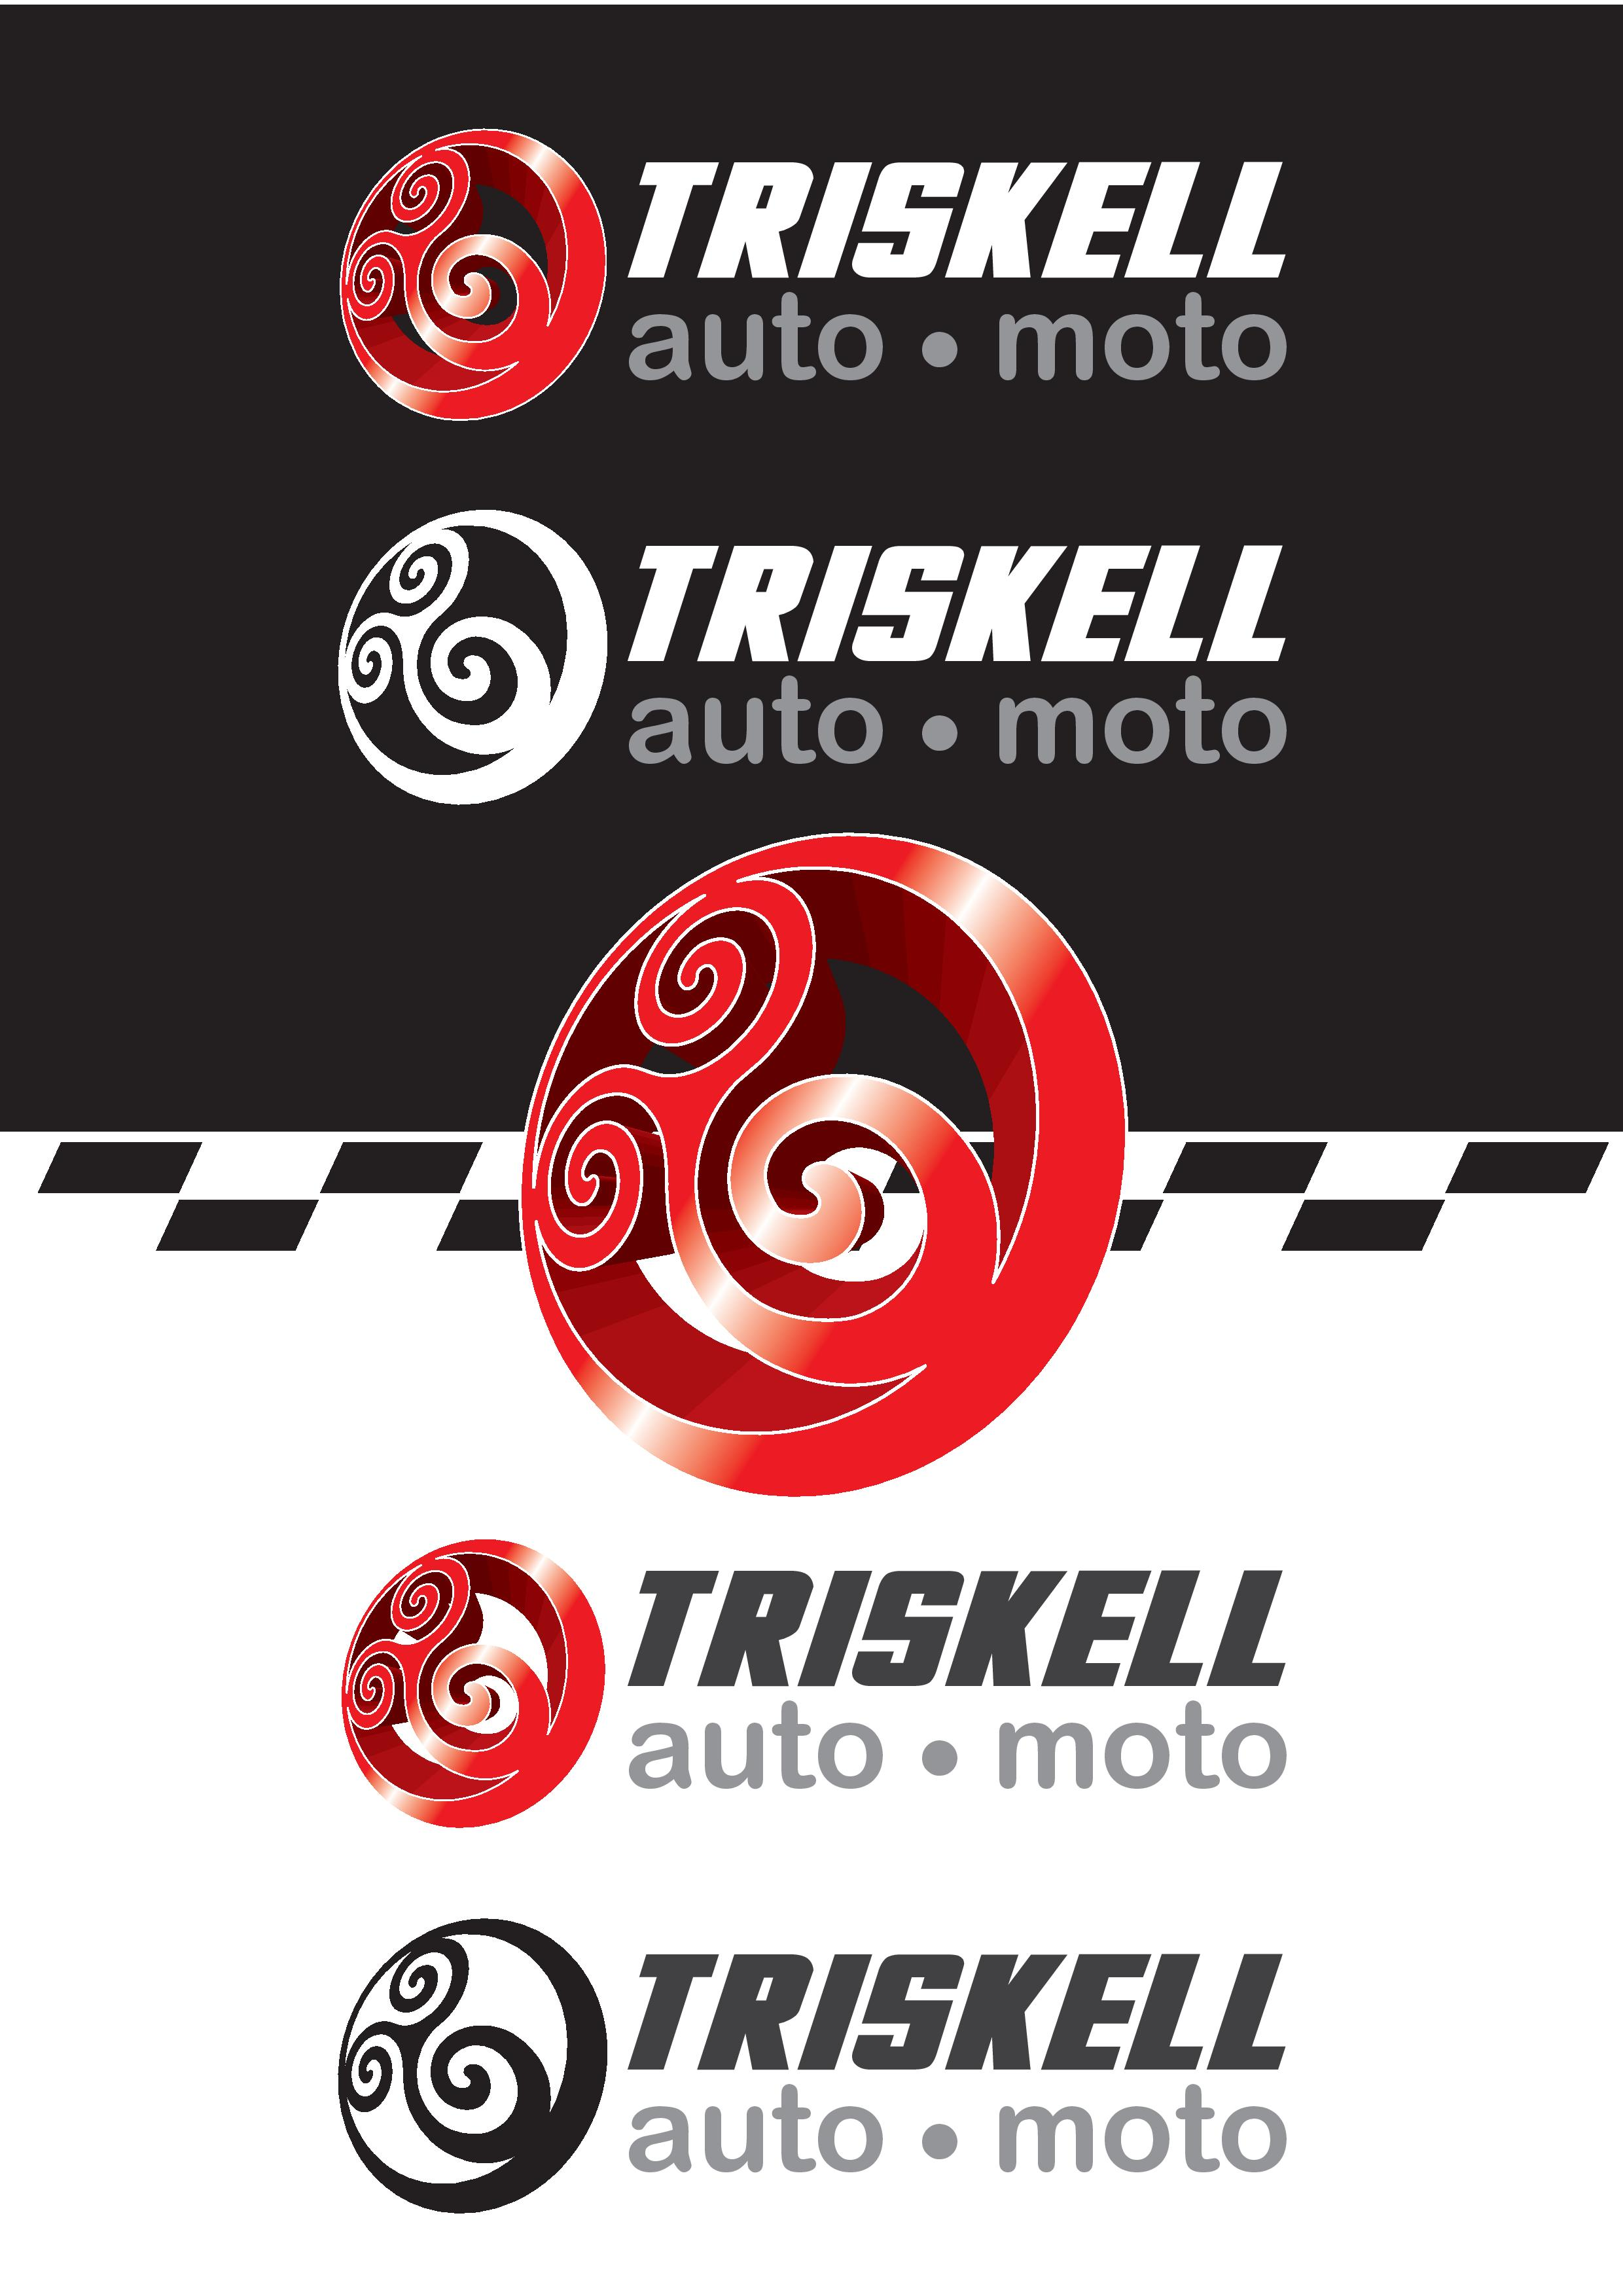 Triskell-logo09-page-001